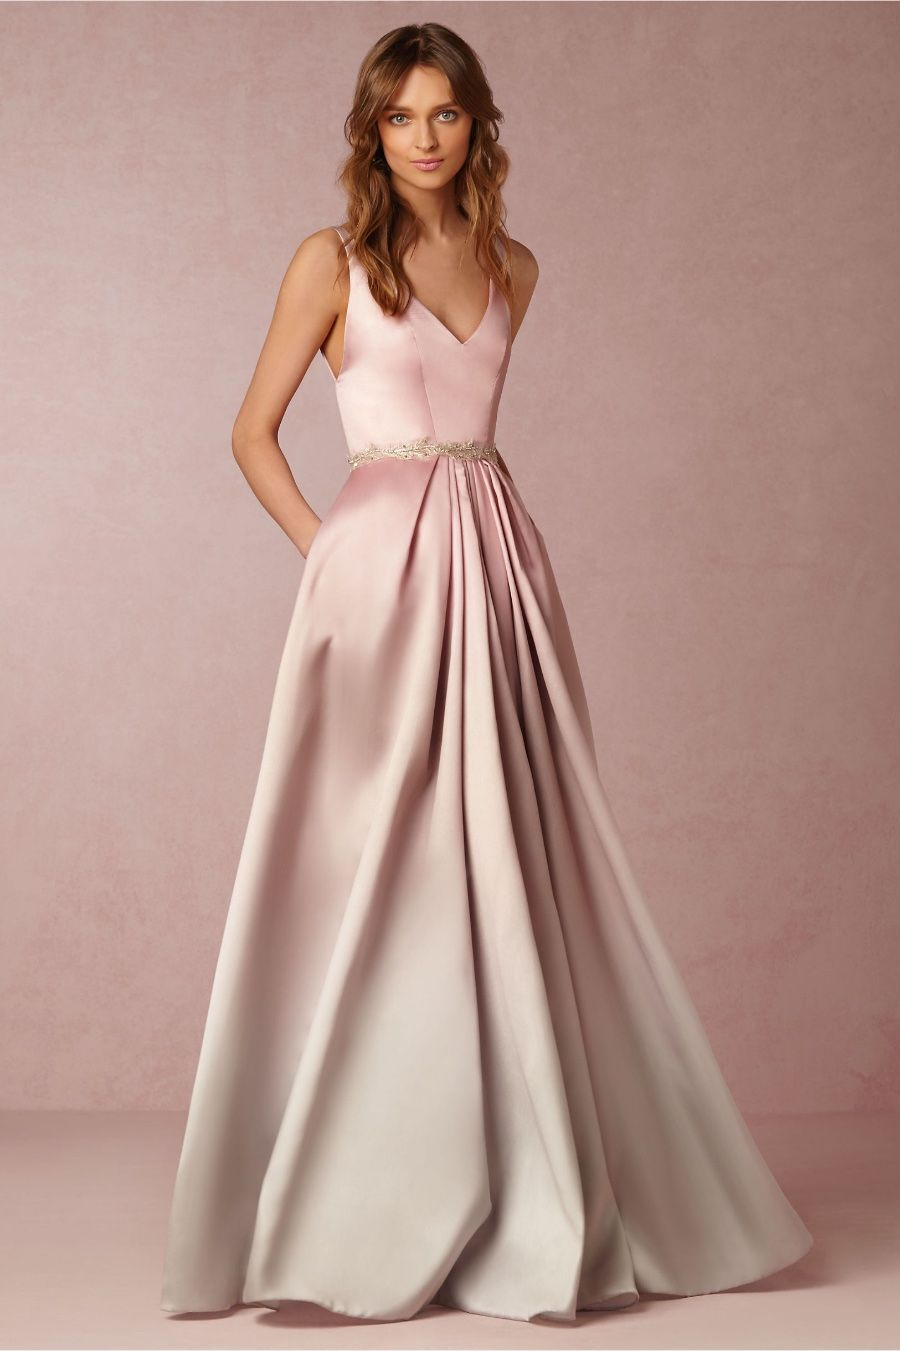 Anthropologie BHLDN Blush Ombre Lorraine Dress-2-$995 MSRP | eBay